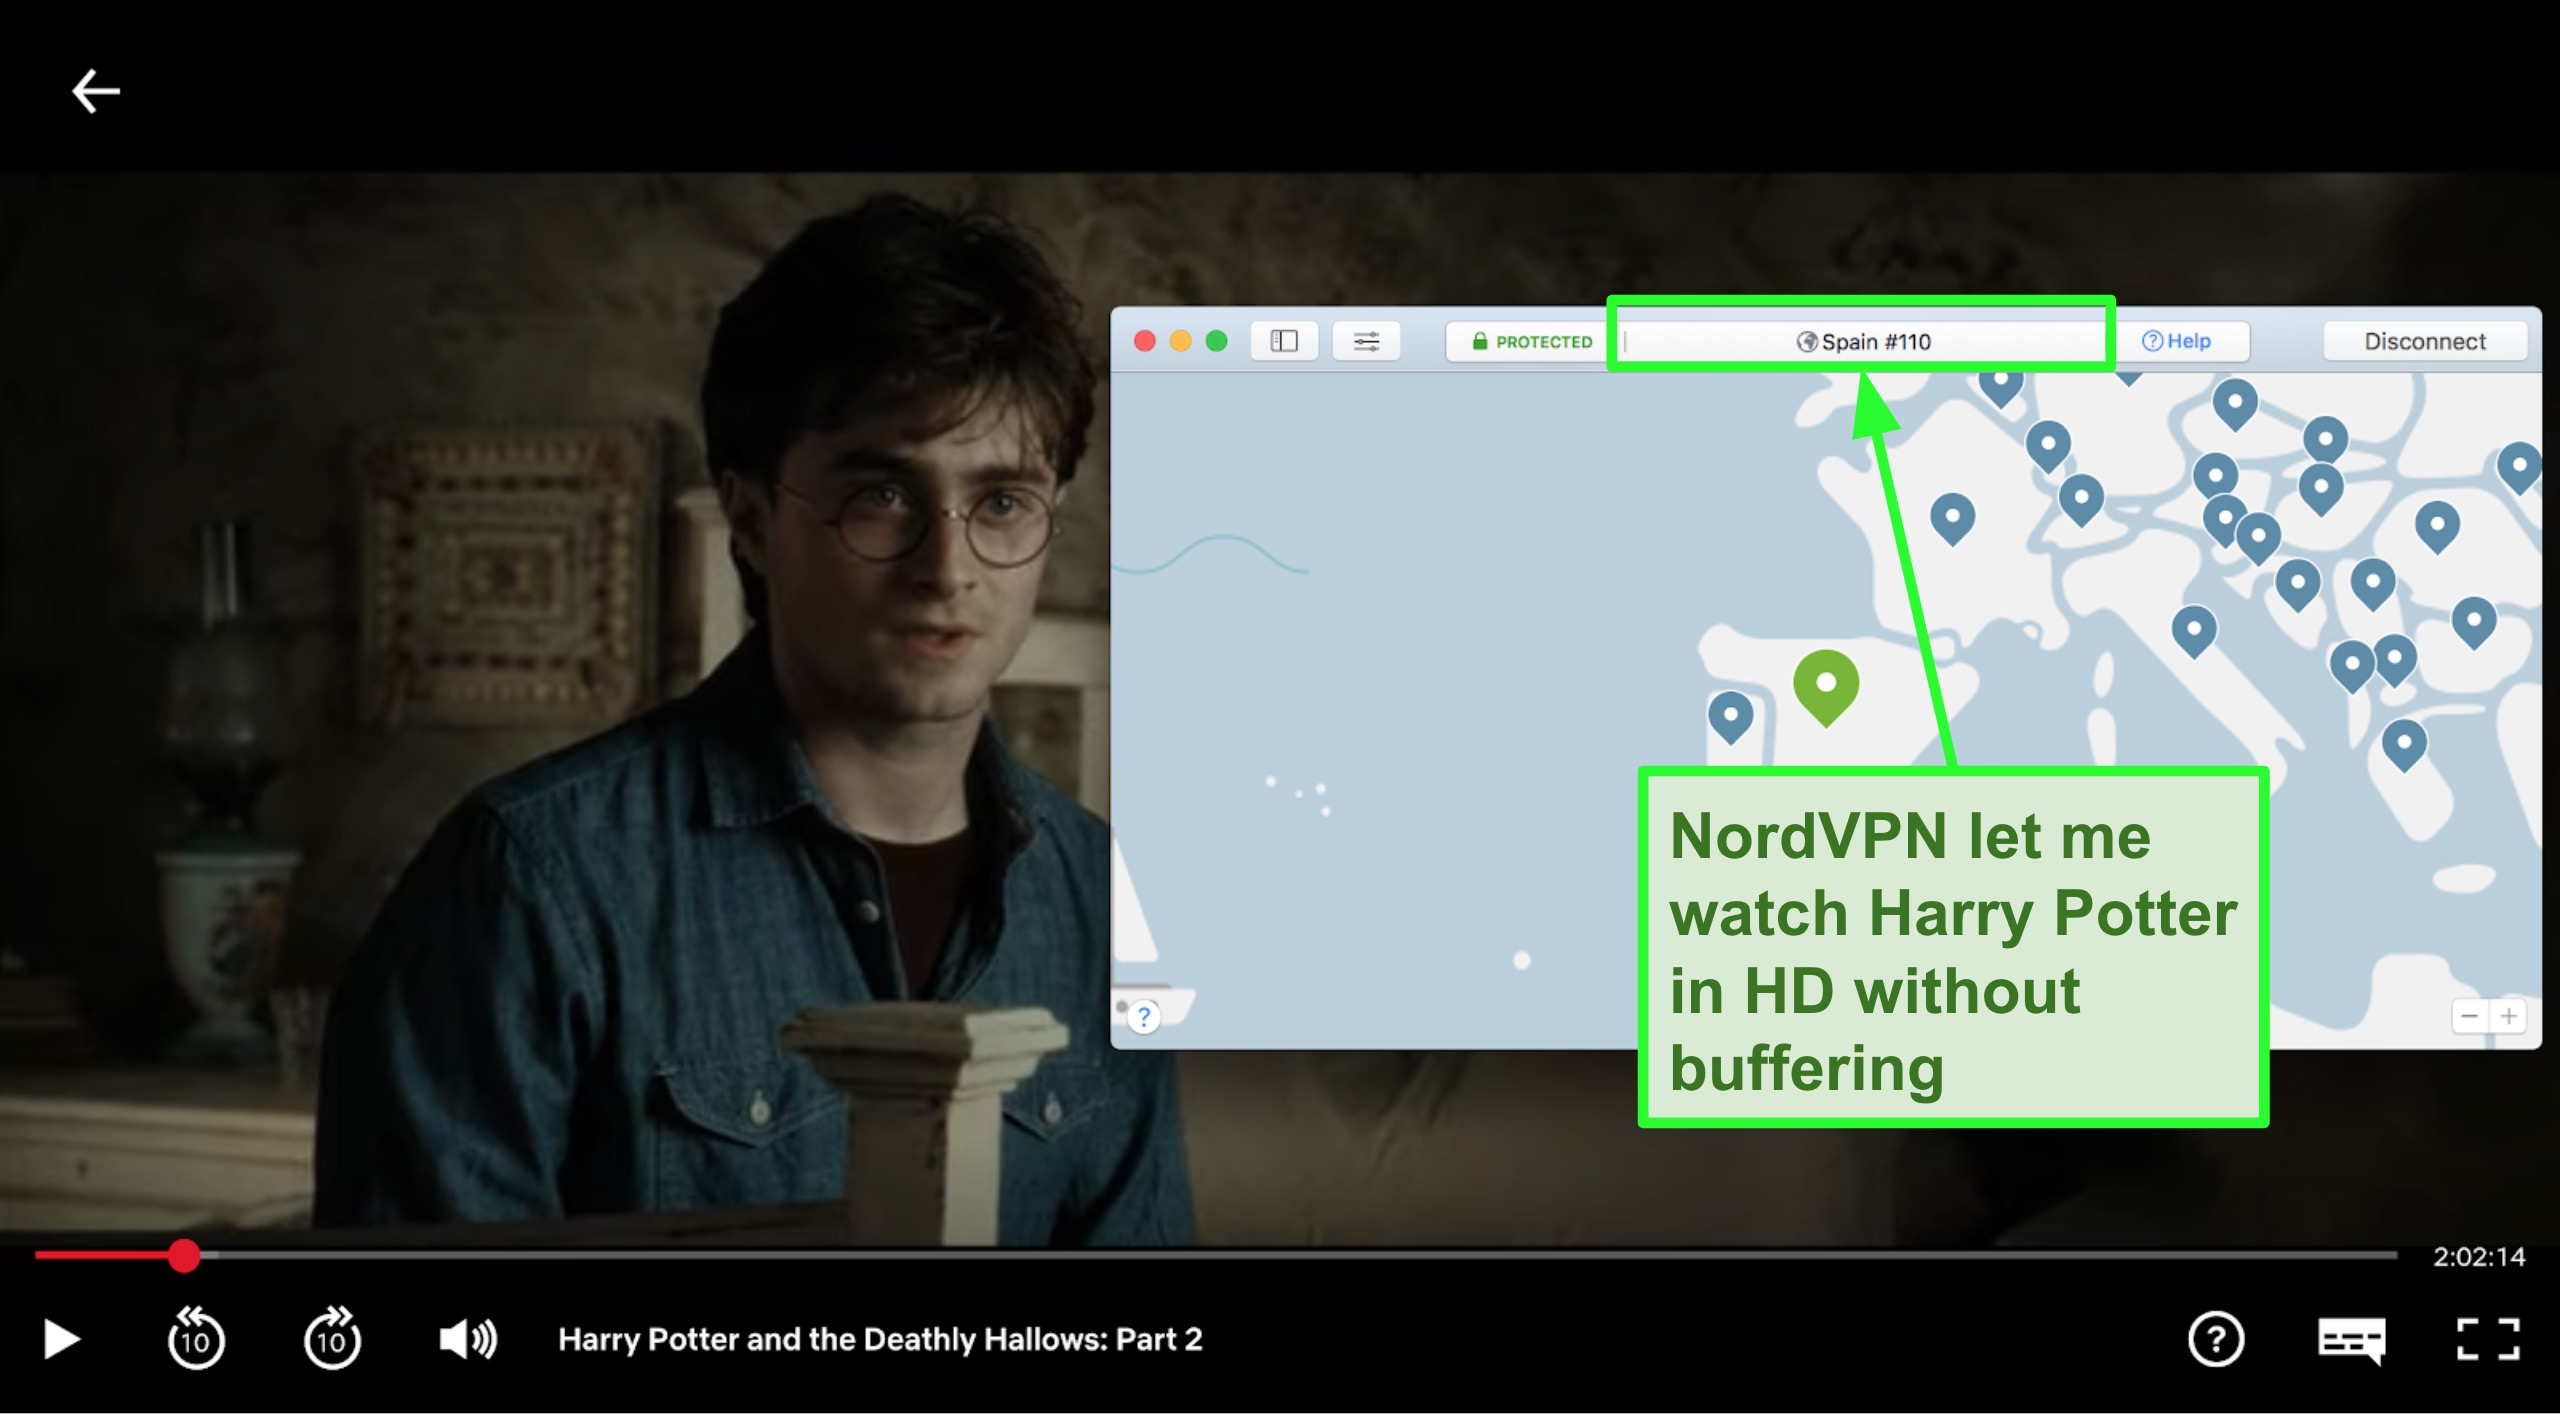 Screenshot of NordVPN connected to Spain server and streaming Harry Potter on Netflix